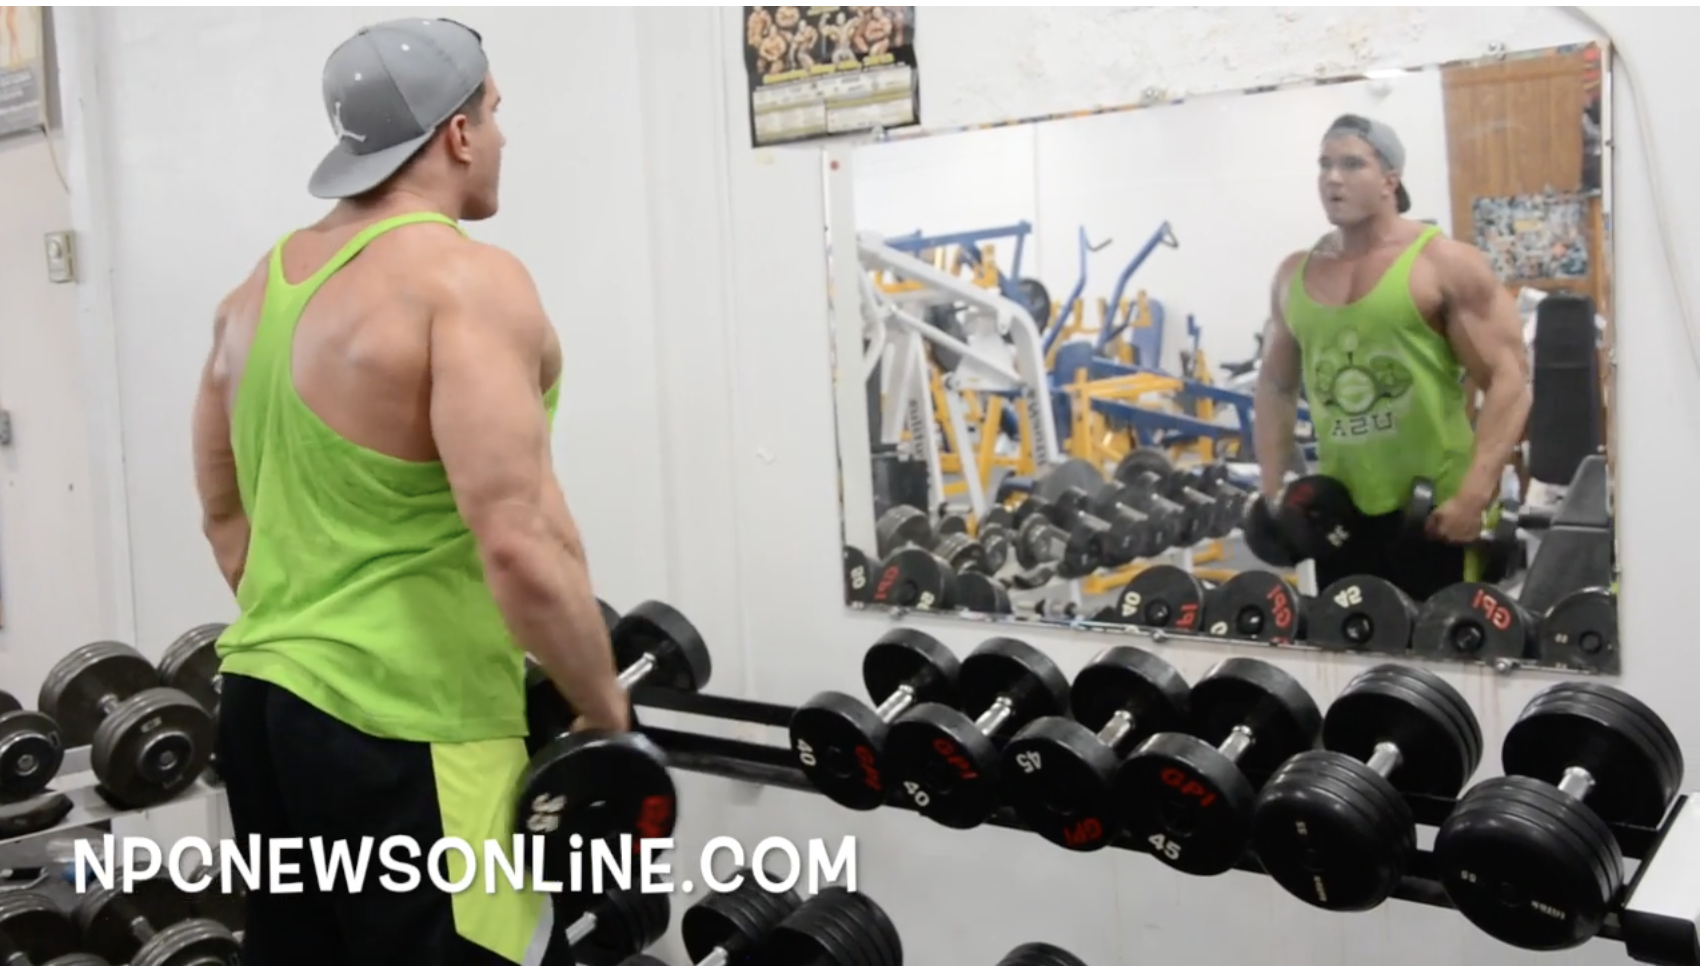 NPC Bodybuilder's Silas Merkel & Eric Wood Delts Workout Video